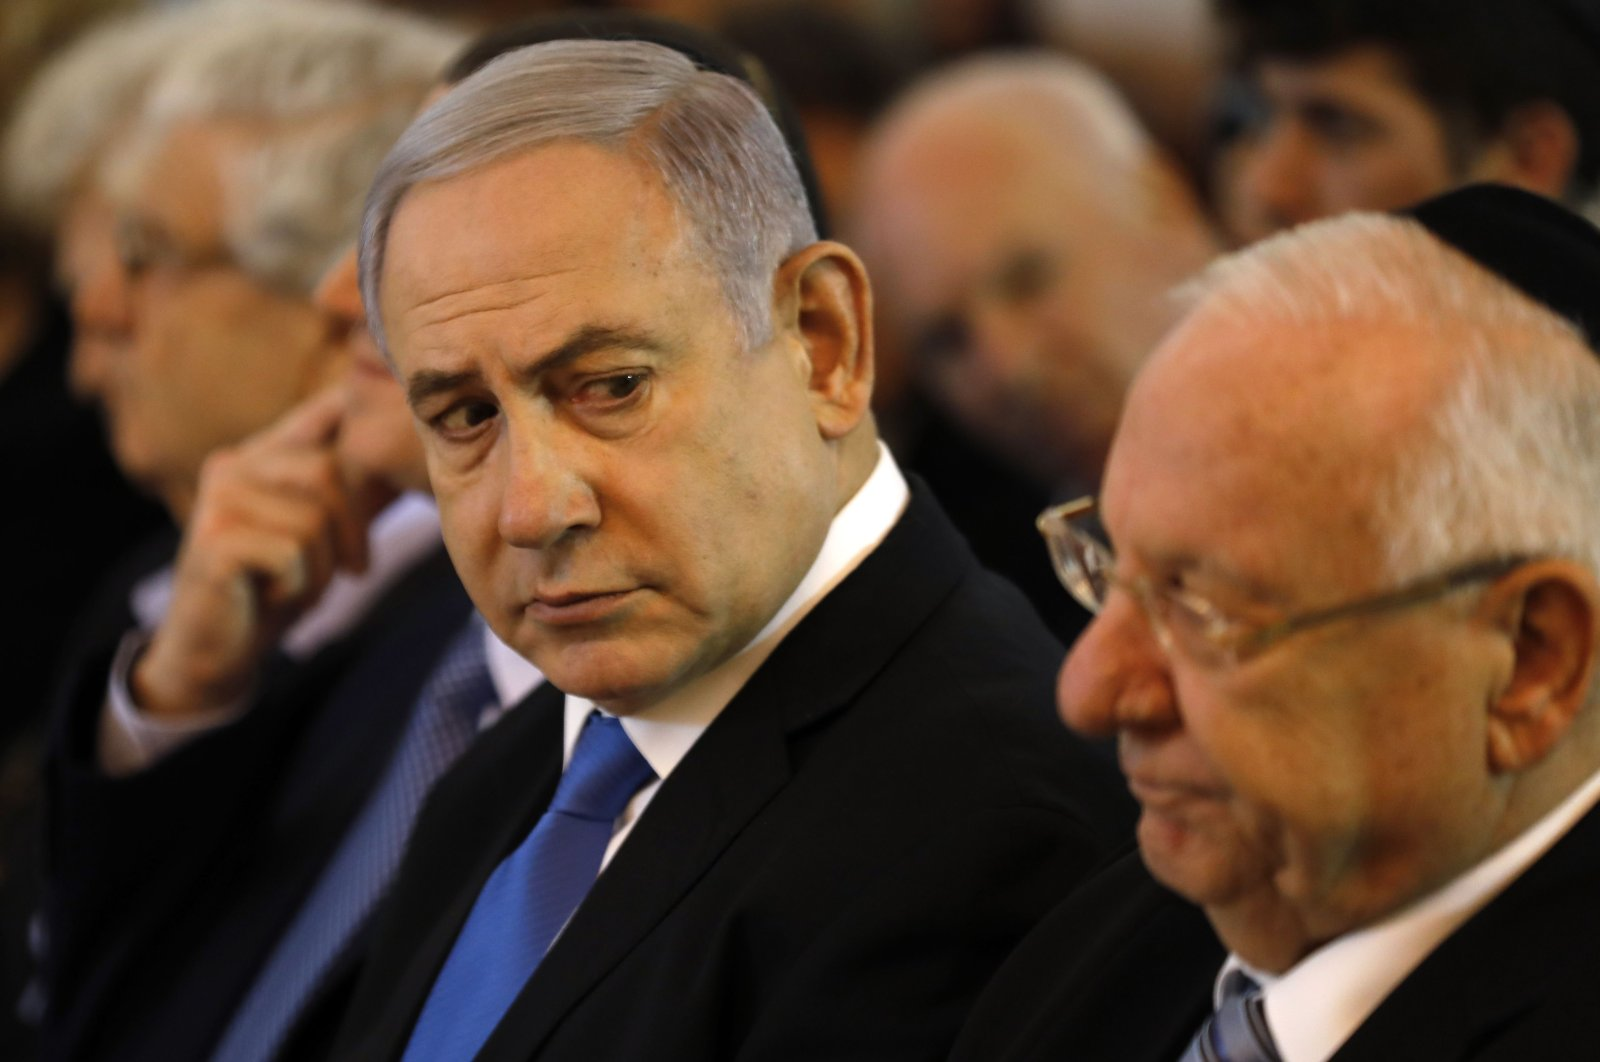 Israeli Prime Minister Benjamin Netanyahu (L) and President Reuven Rivlin attend a ceremony in tribute to the recently deceased former Supreme Court president Meir Shamgar ahead of his funeral, in Jerusalem, Oct. 22, 2019. (AFP Photo)